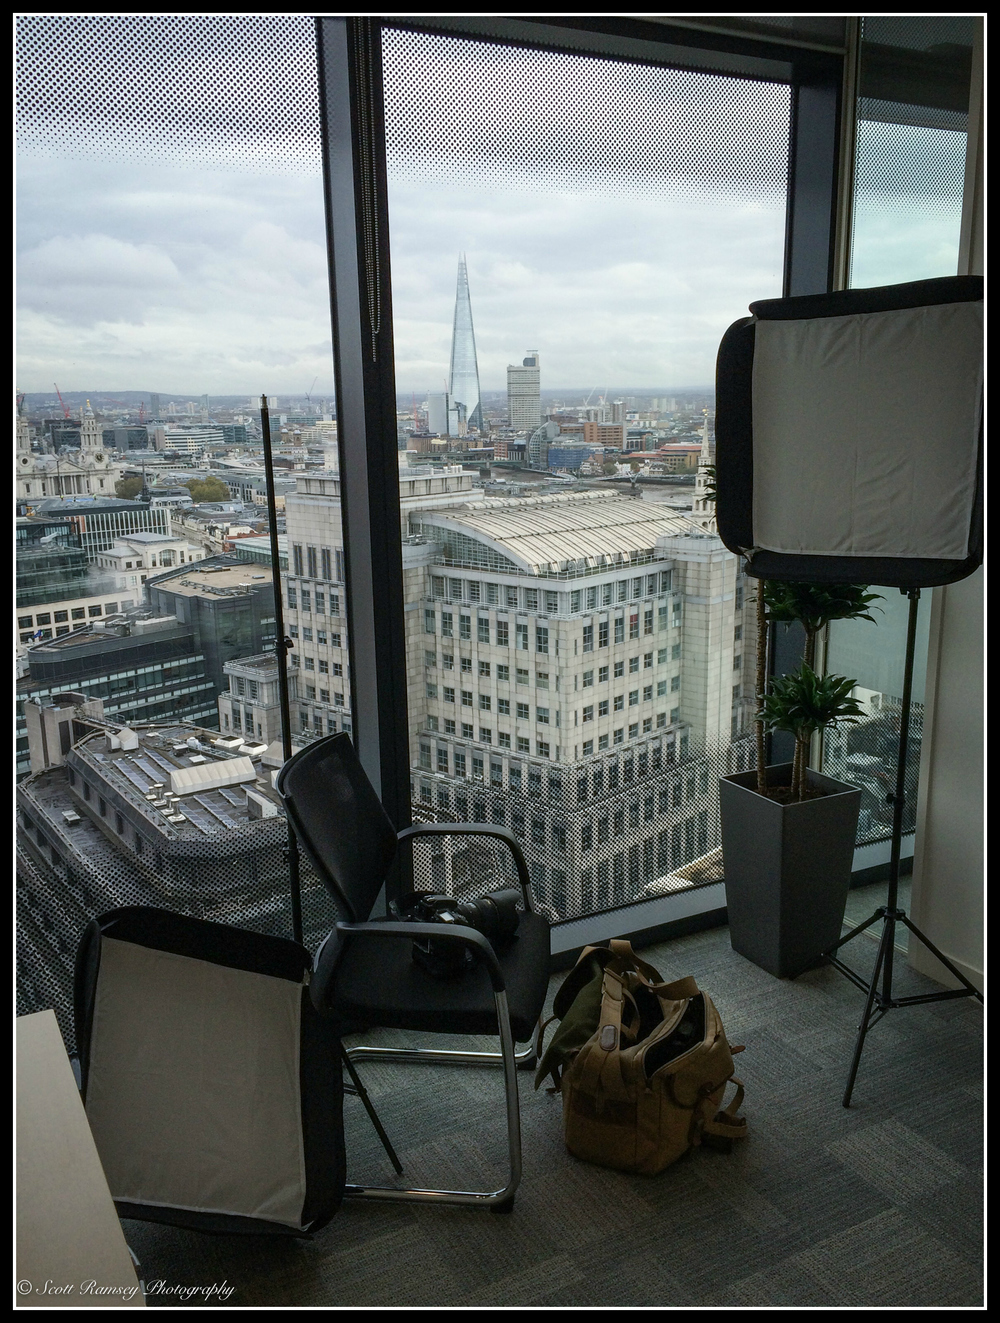 Ready for the corporate photo shot. My photo equipment is set up in front of a large window 17 floors up above London.